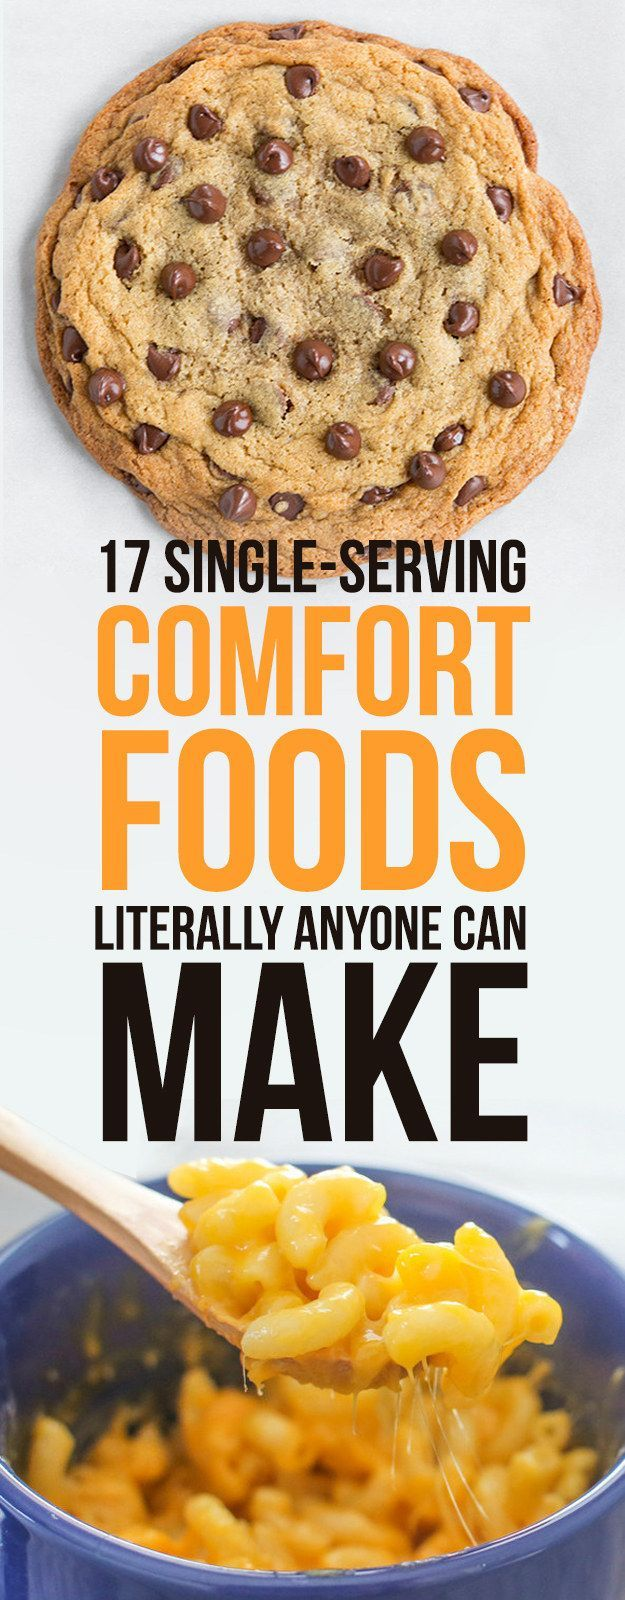 17 Single-Serving Comfort Foods Literally Anyone Can Make